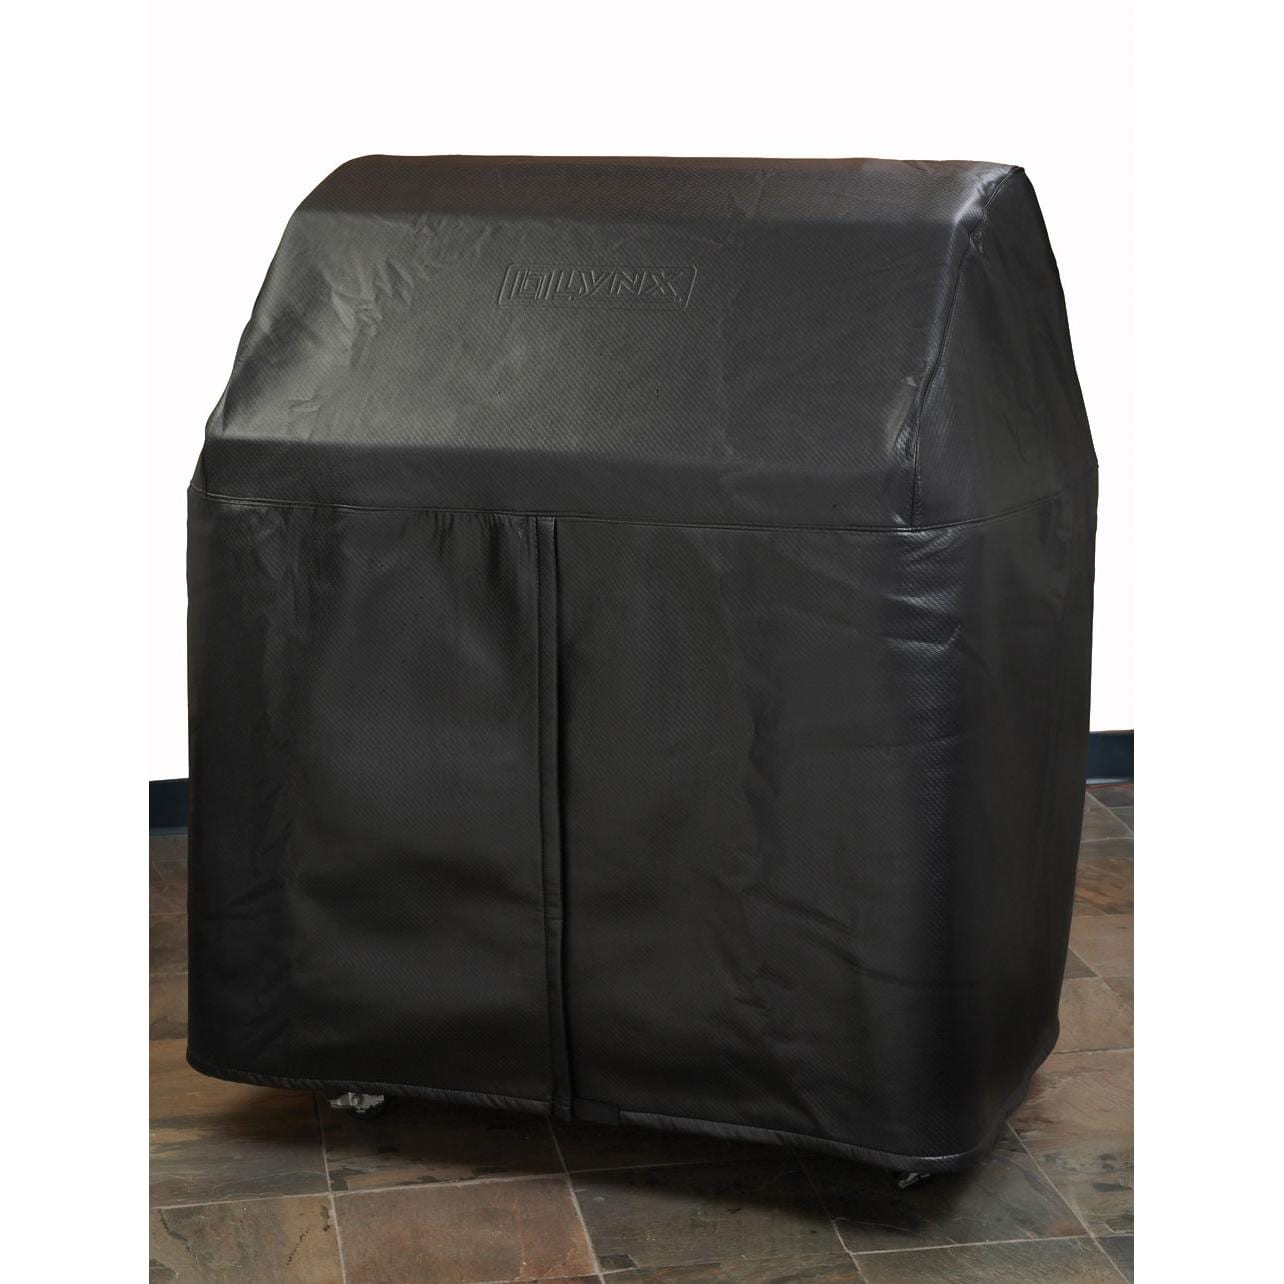 Lynx 27-Inch Professional Gas Grill Cover